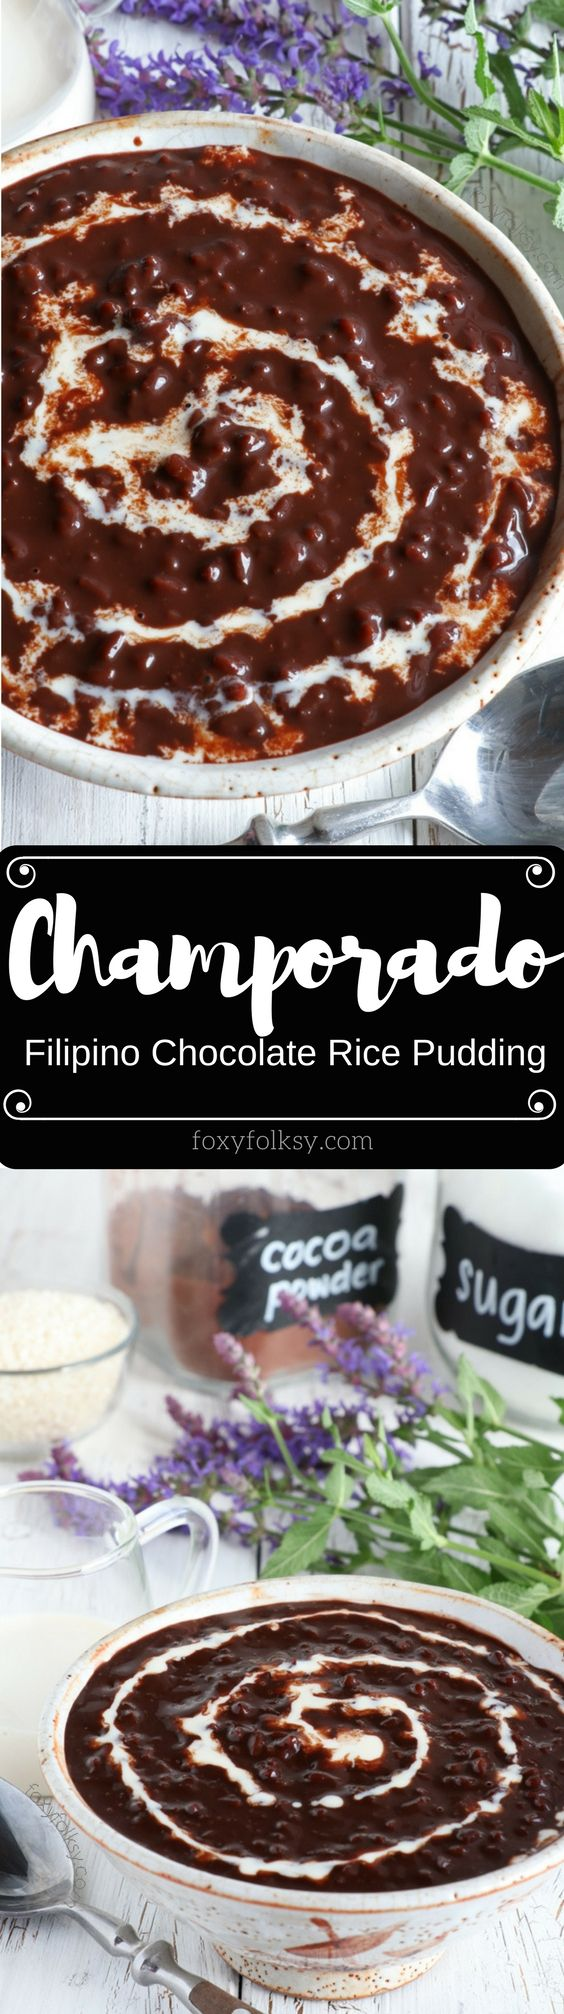 Try Champorado for breakfast. A Filipino sweet porridge made from cocoa and glutinous rice top and served with condensed milk. | www.foxyfolksy.com.